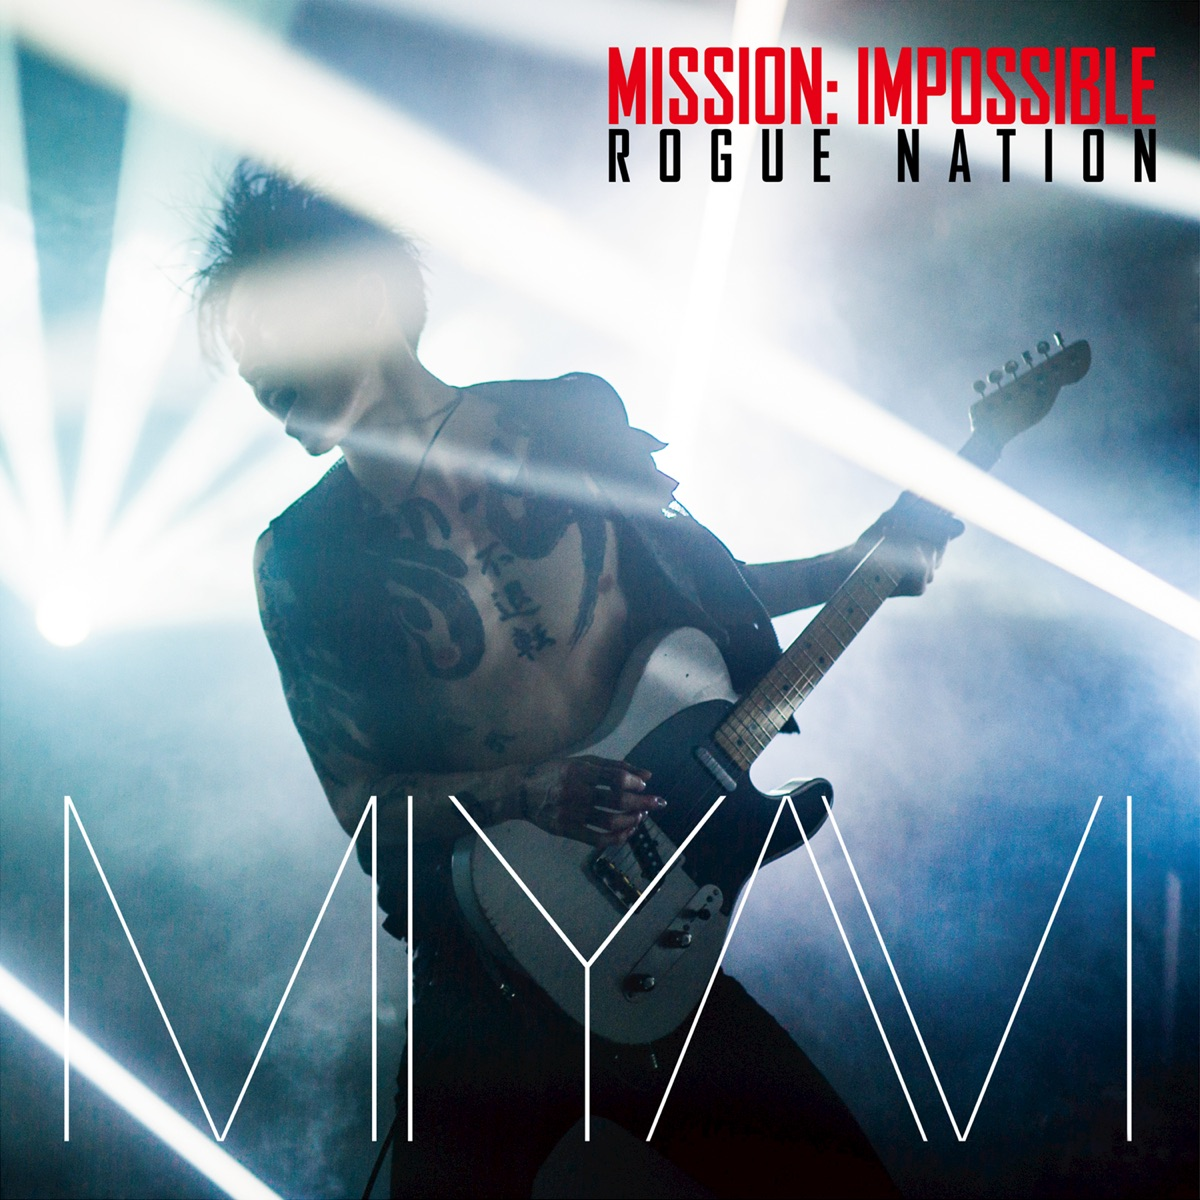 Mission Impossible Theme Single Album Cover By Miyavi